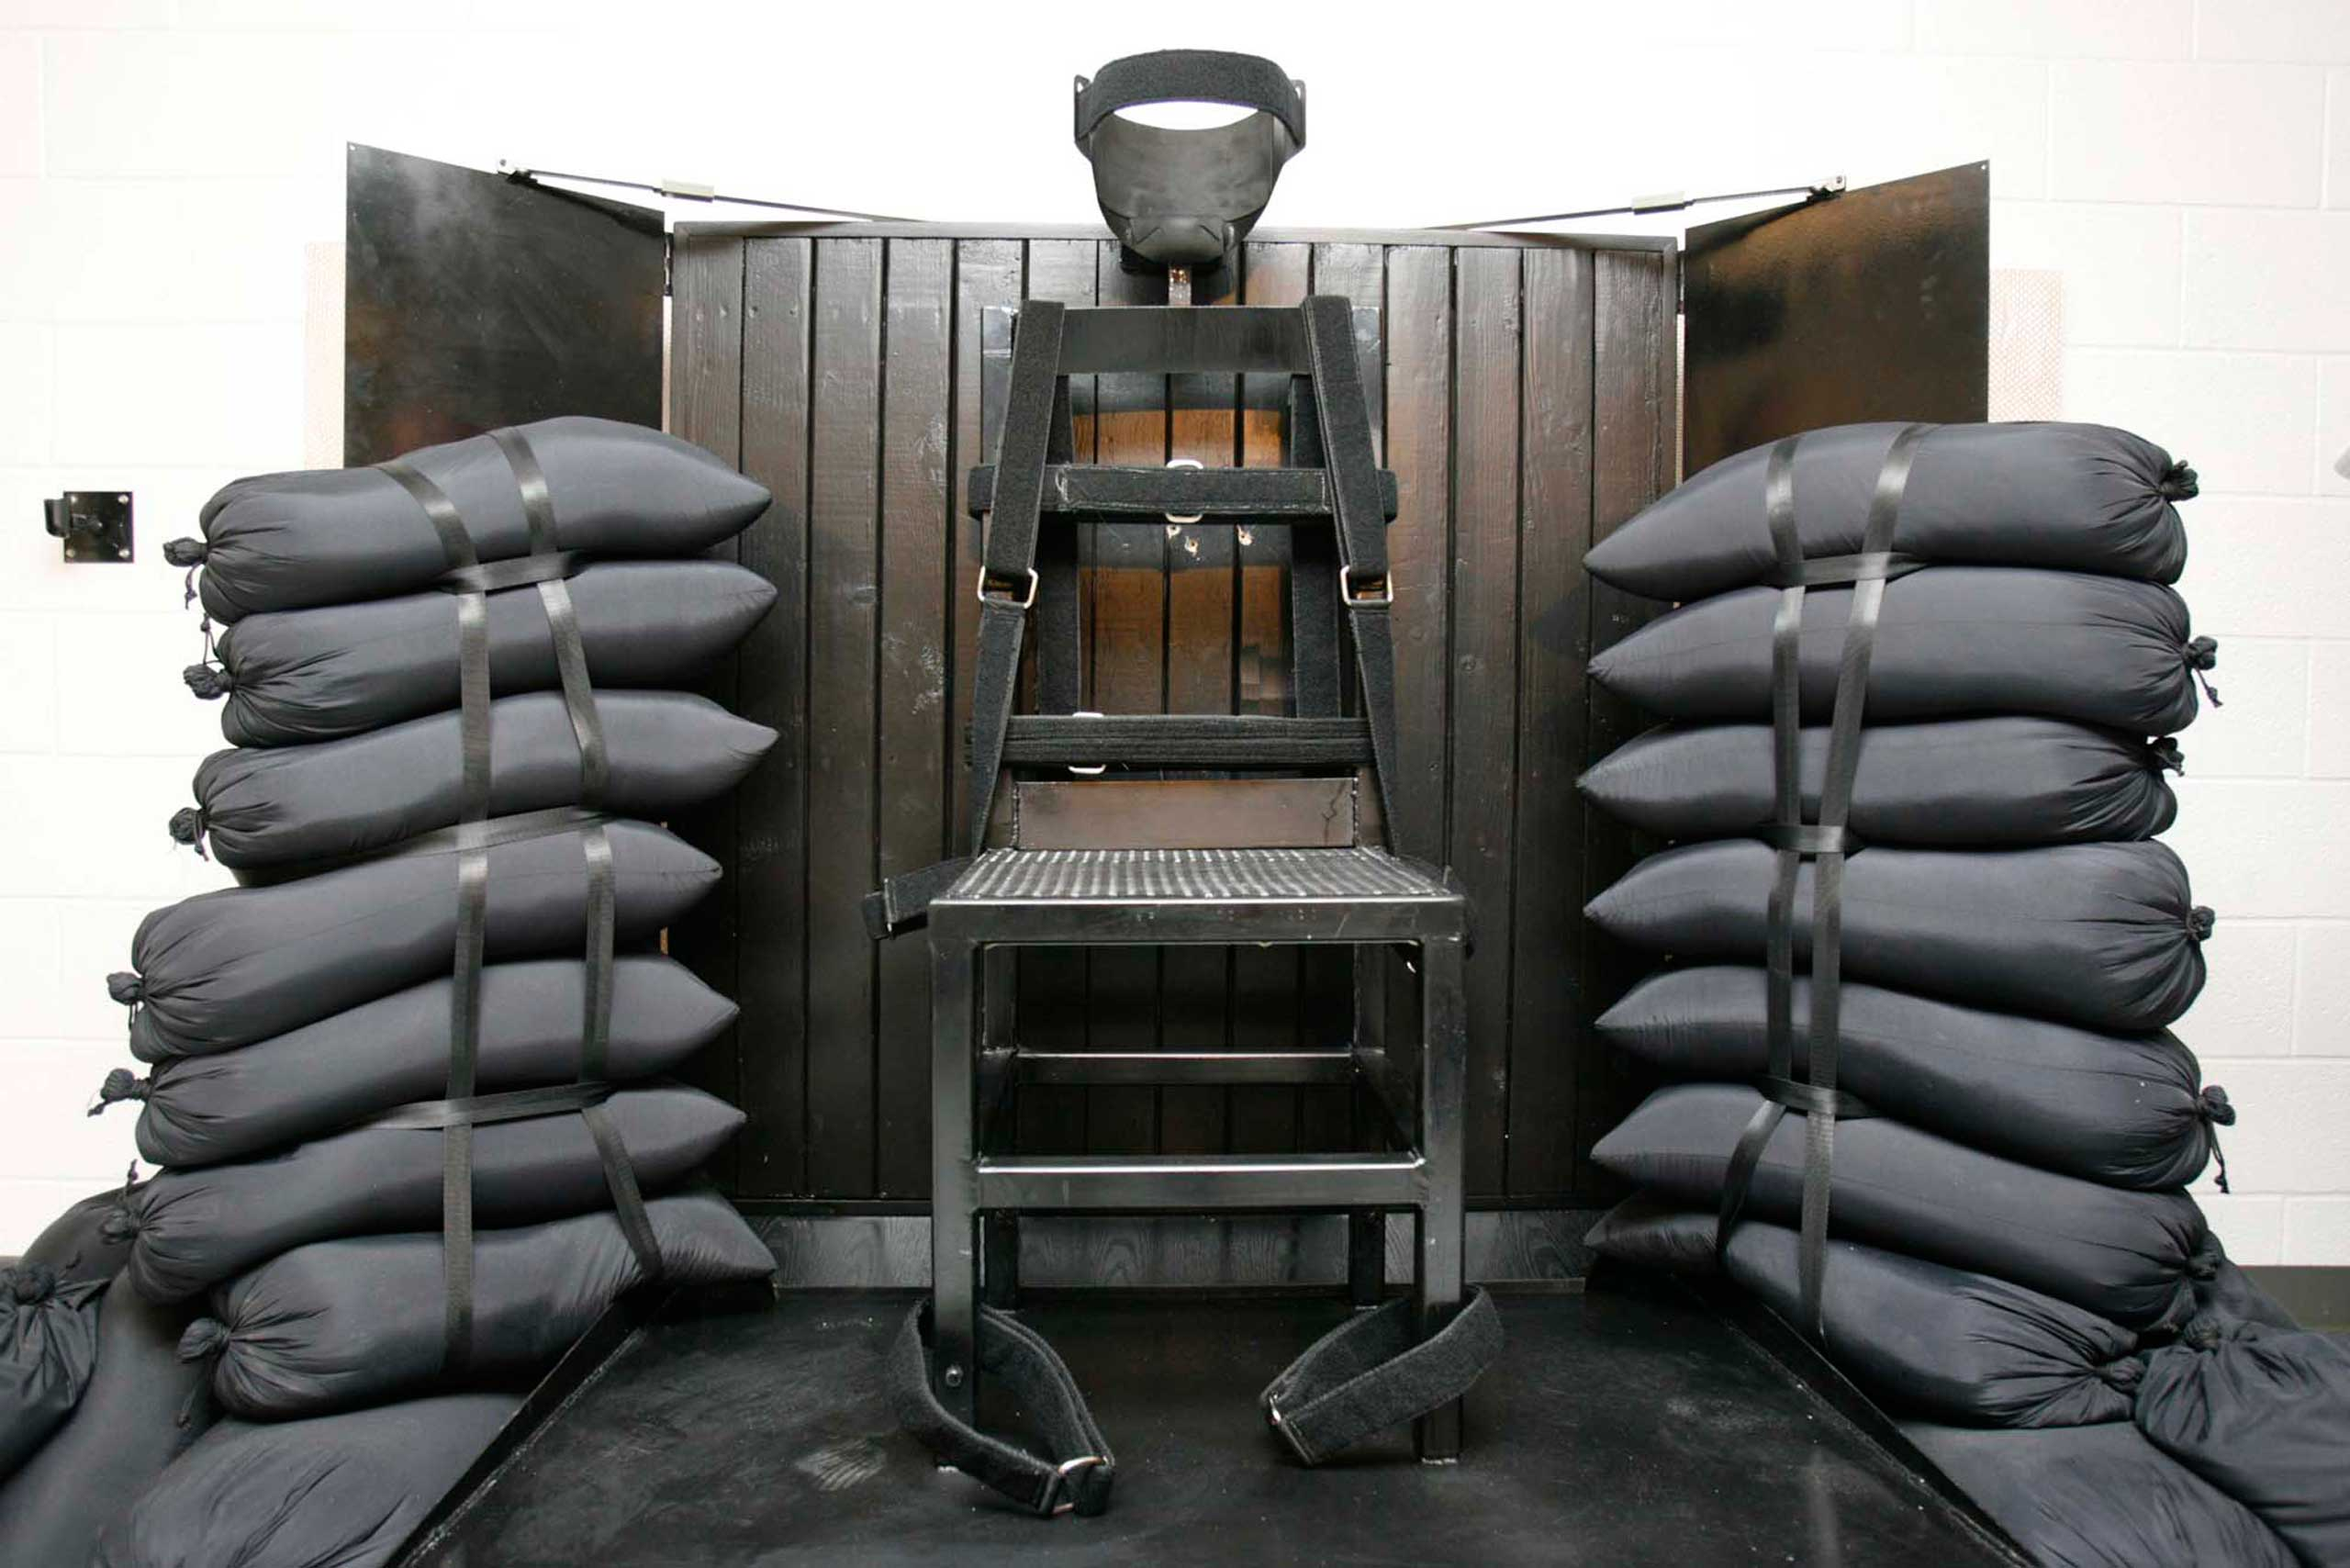 The firing squad execution chamber at the Utah State Prison in Draper, Utah in 2010.